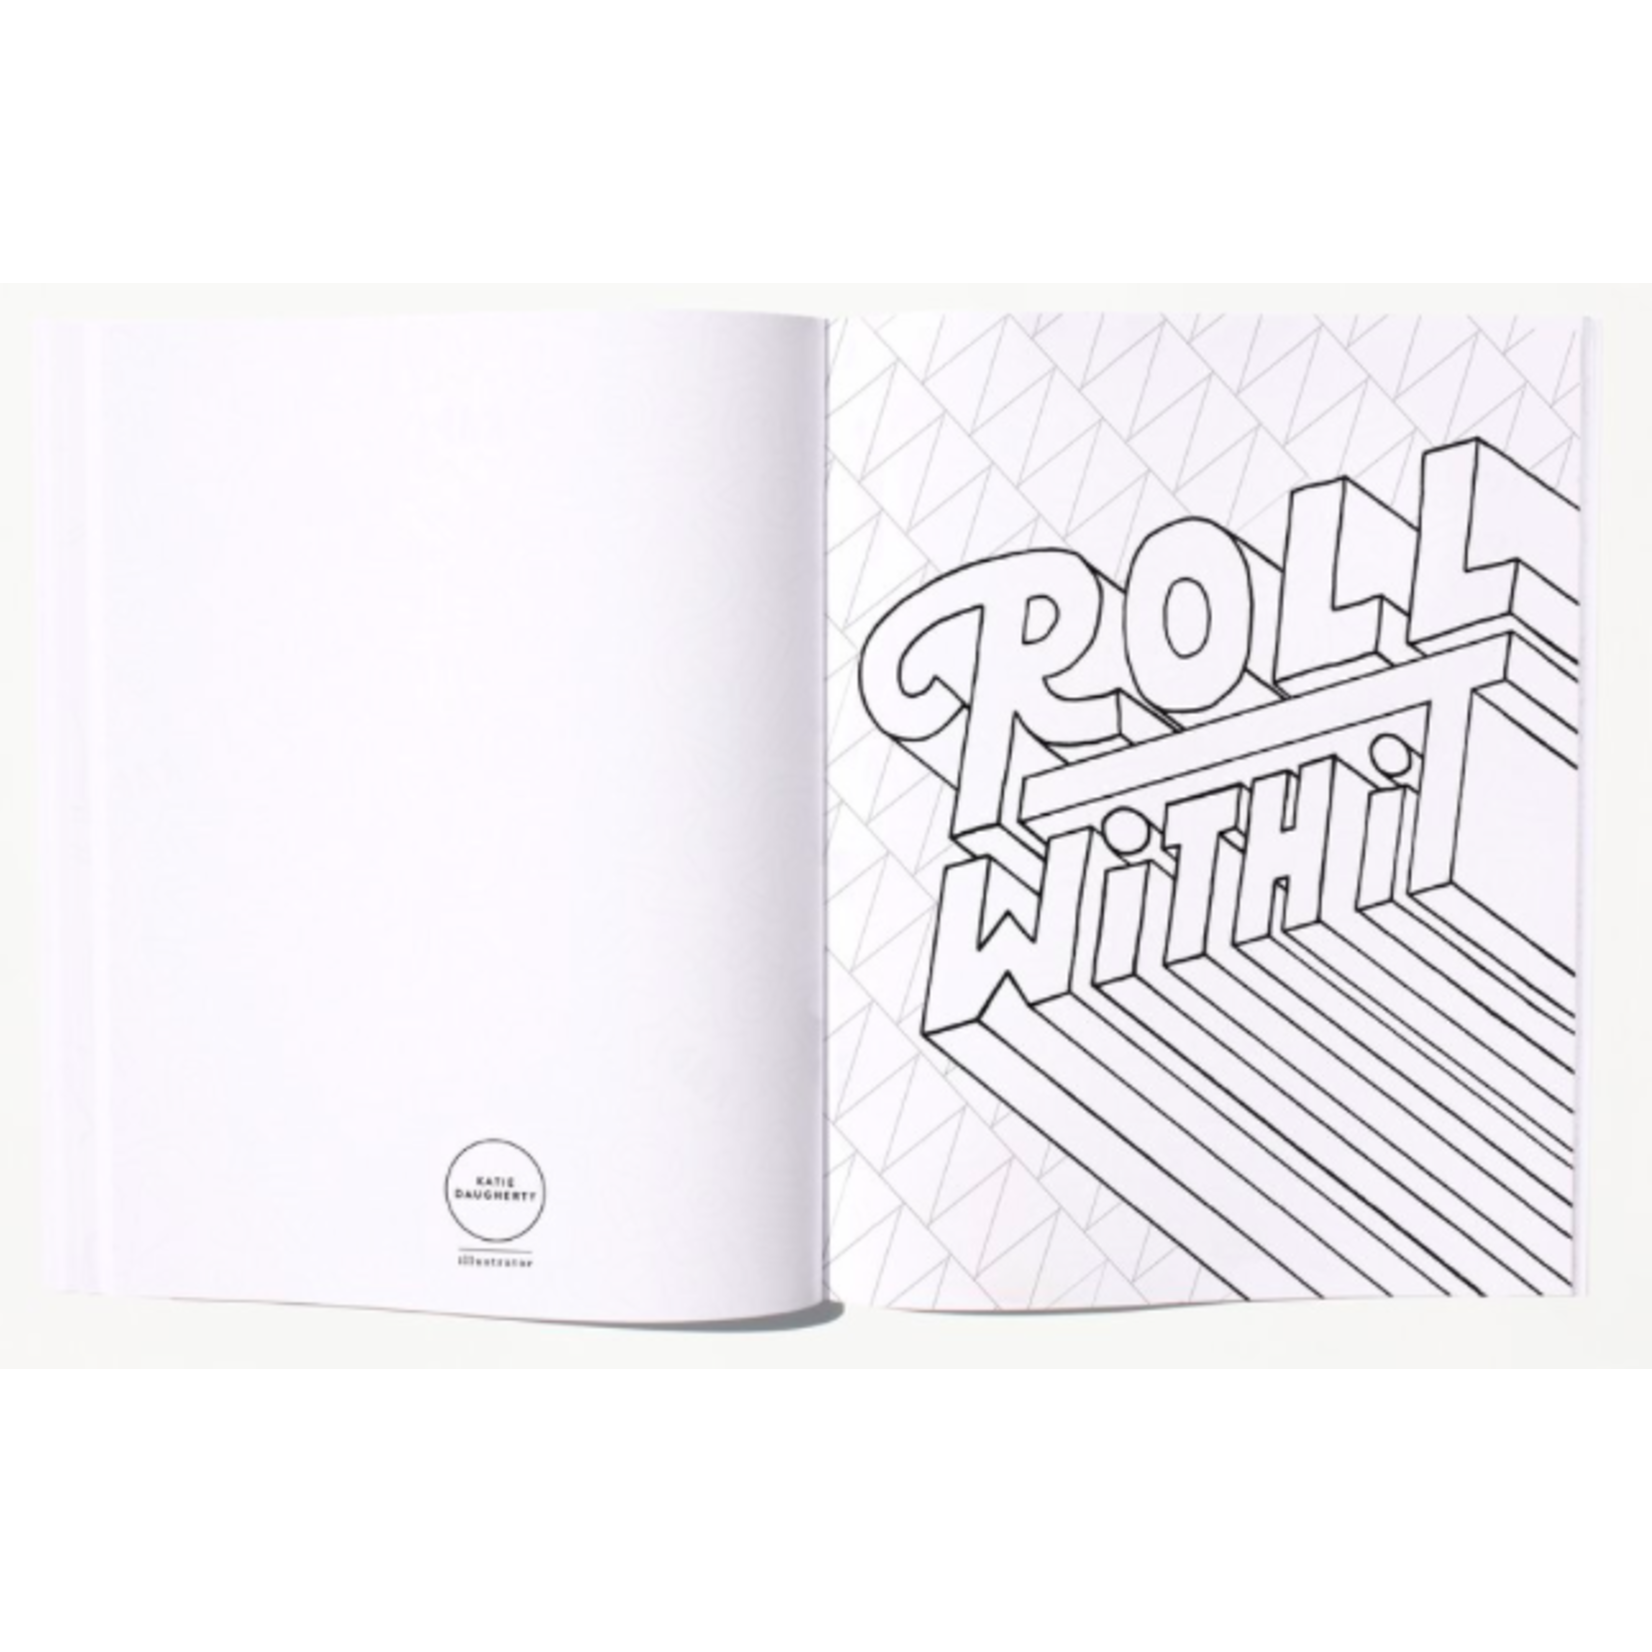 Free Period Press You Got This Mantra Coloring Book